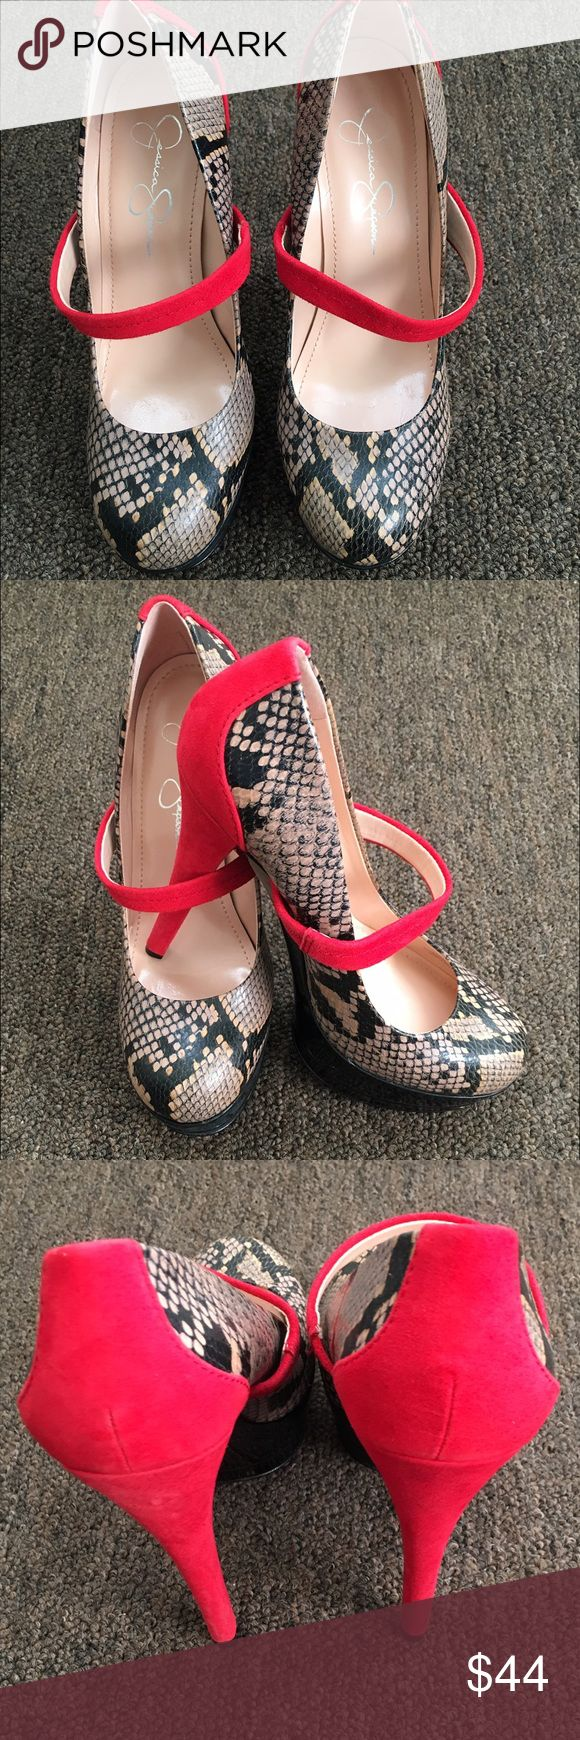 Jessica Simpson 'Cheetah' Heels - Size 7M Jessica Simpson 'Cheetah' Heels - Size 7M -- Color: Red Suede/Black/Nude Snakeskin -- In great condition and ready to be shipped. Jessica Simpson Shoes Heels